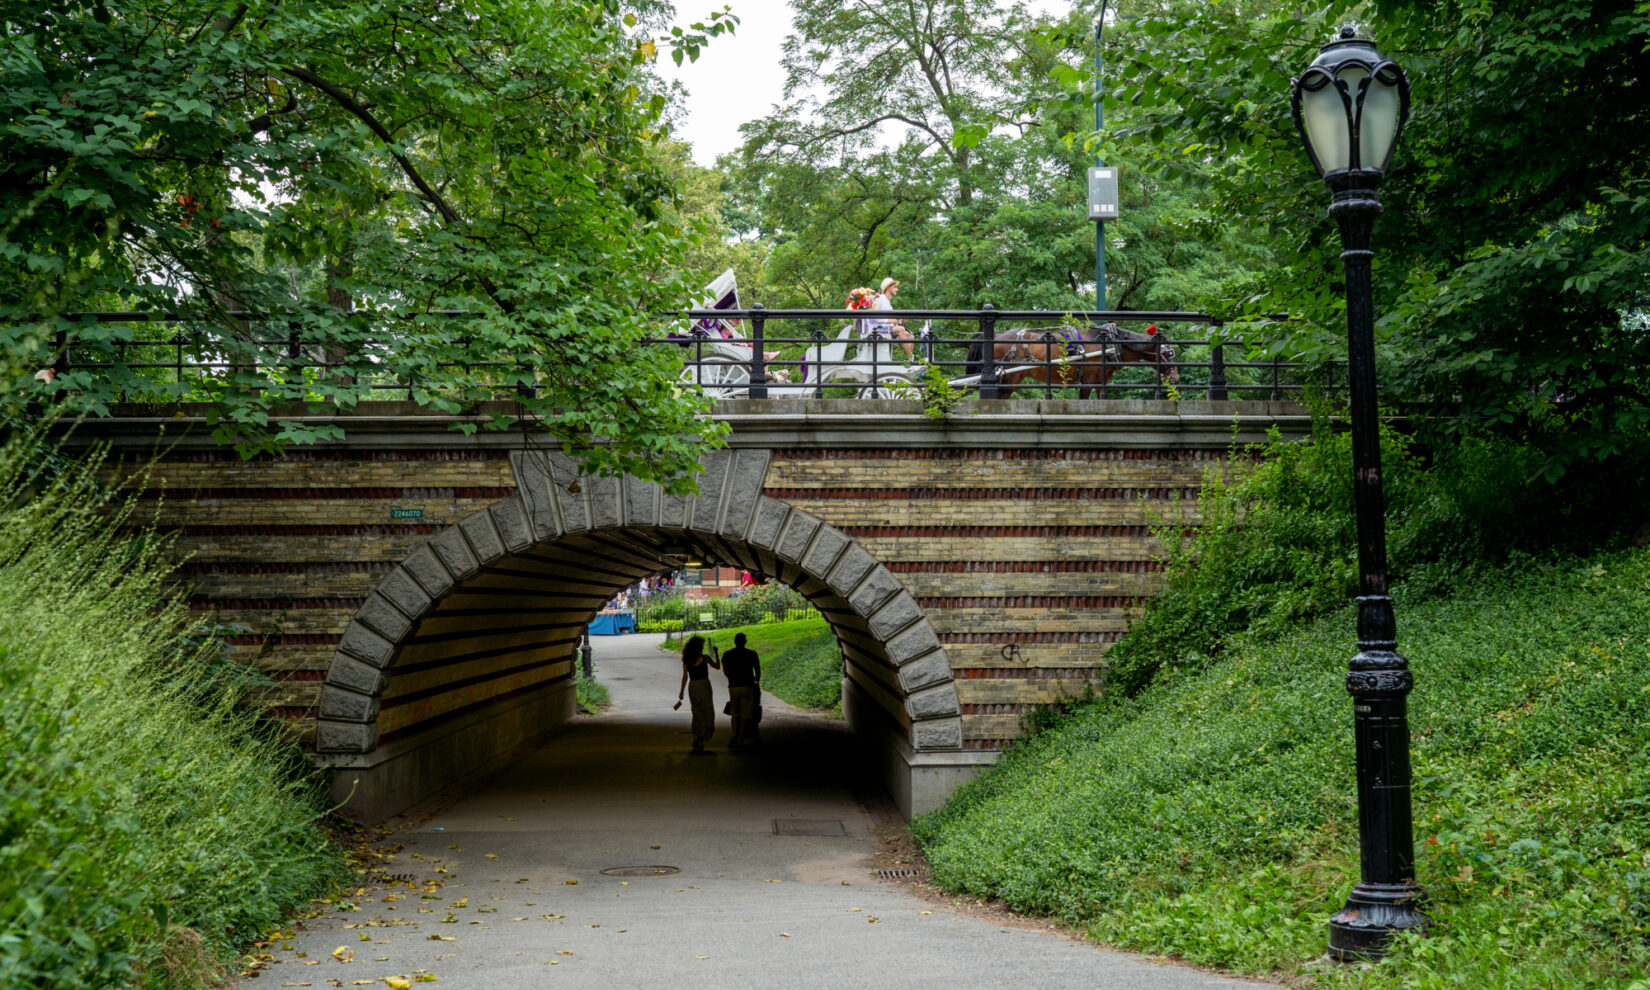 Strollers beneath the arch seem unaware of the horse and carriage on the drive above it.